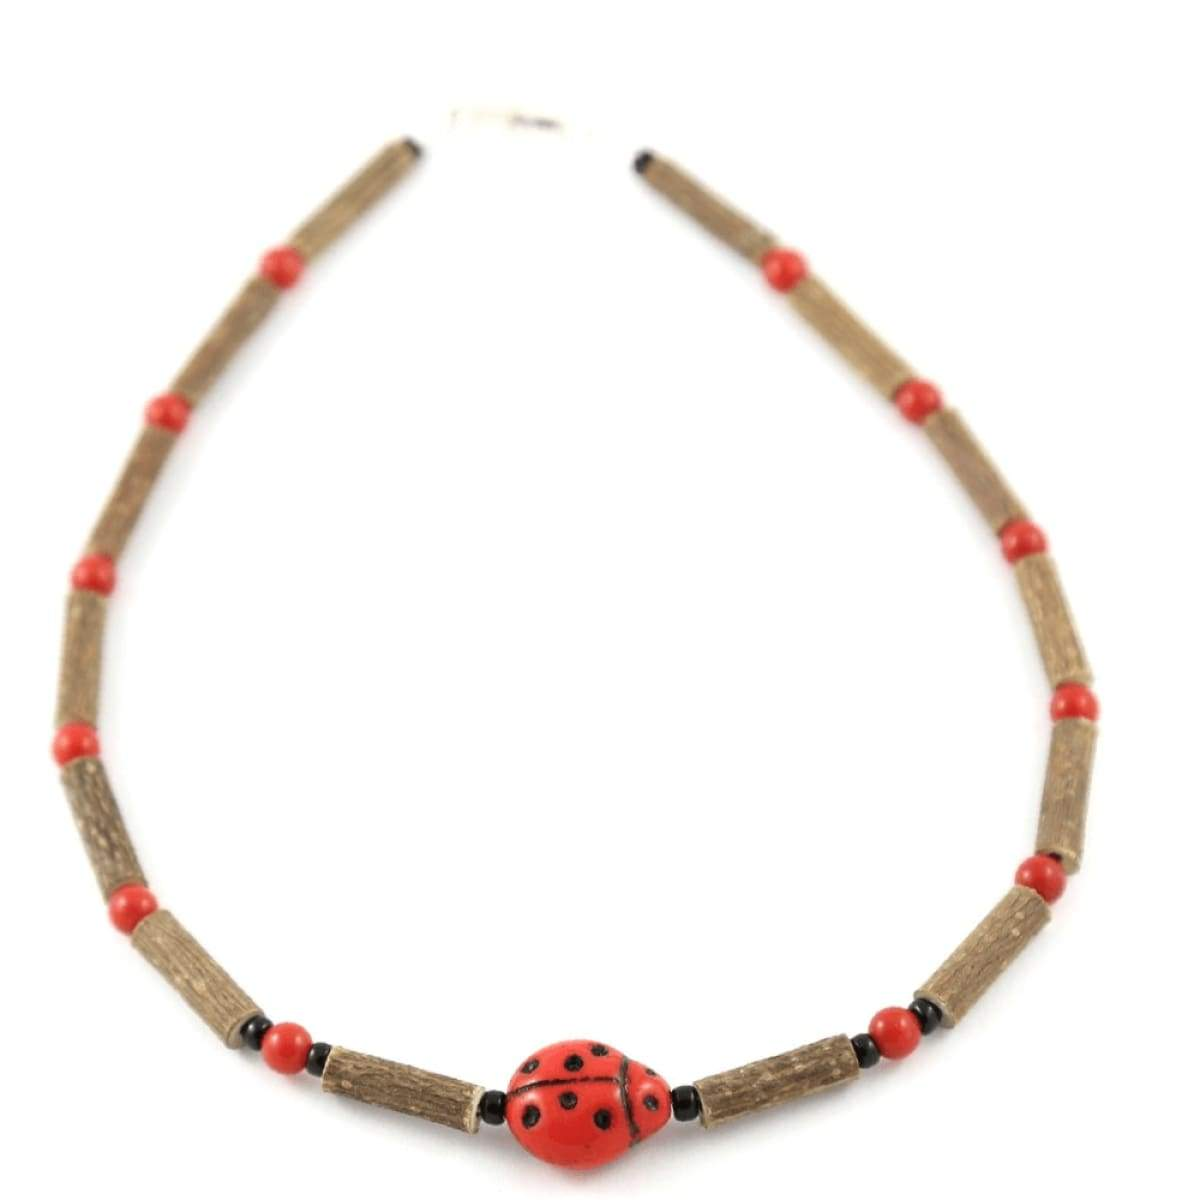 Hazelwood Ladybug - 11 Necklace - Barrel Twist Clasp - Hazelwood Jewelry